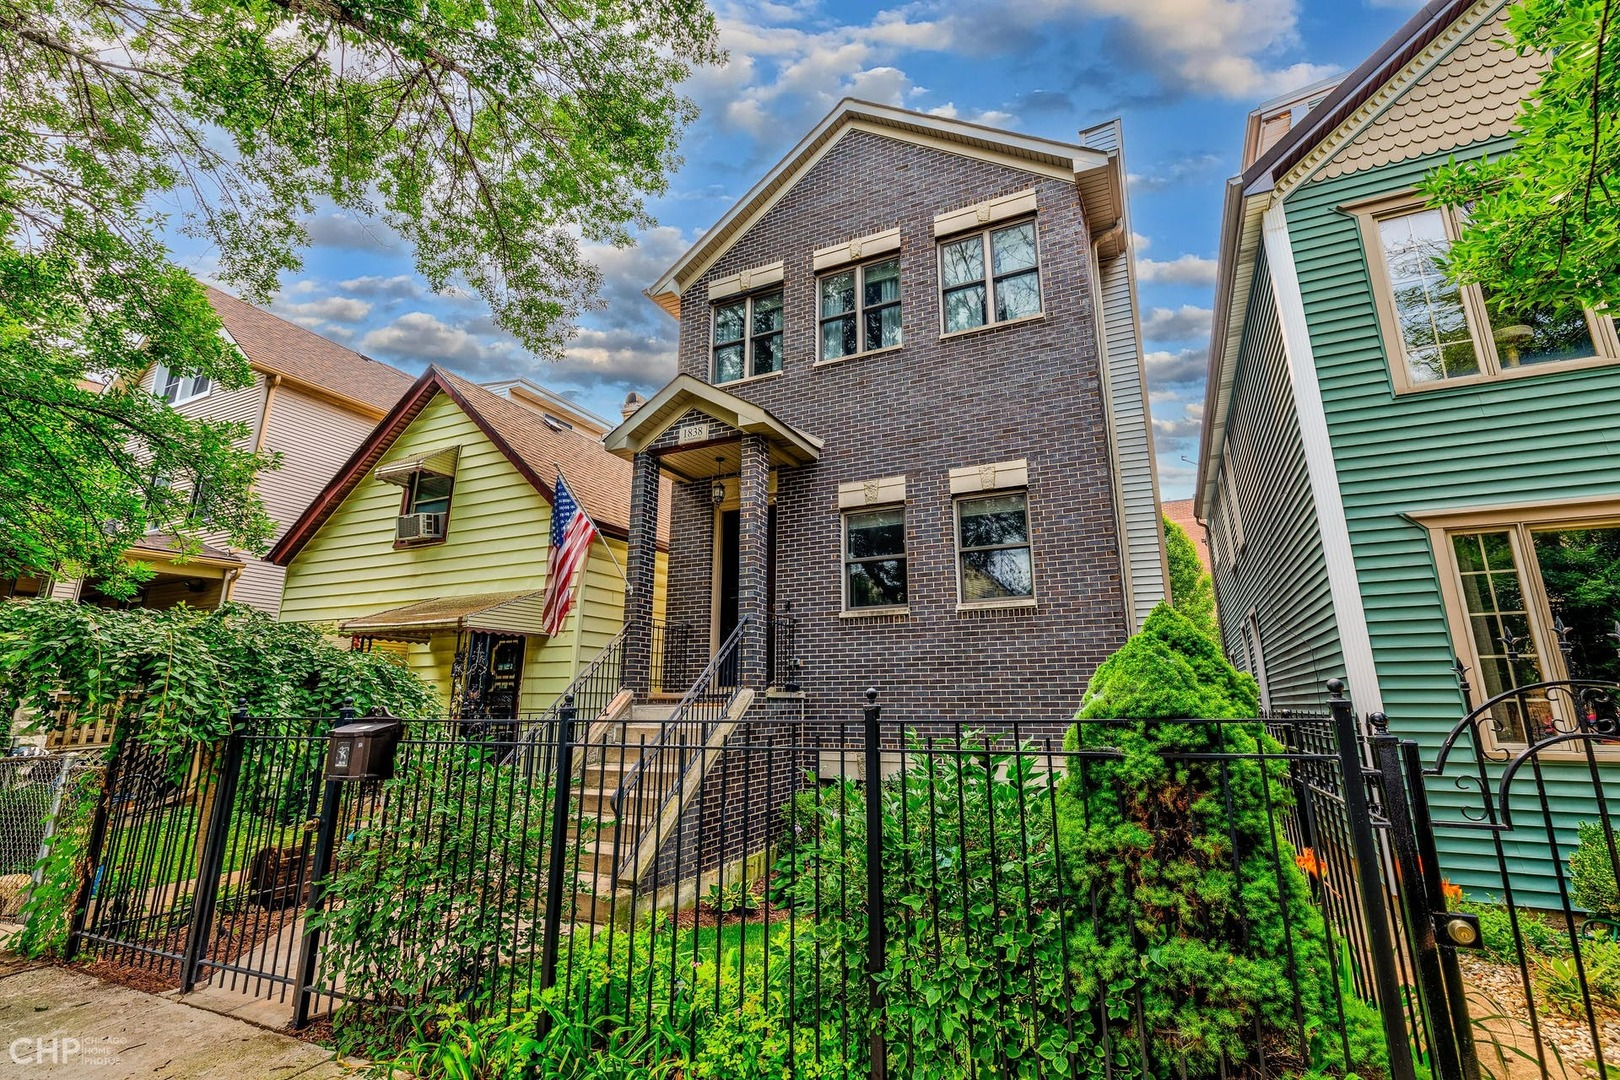 Gorgeous, 4000 sq ft 5 BR/3.5 bath SFH in West Bucktown. Once you enter the home you'll notice the a